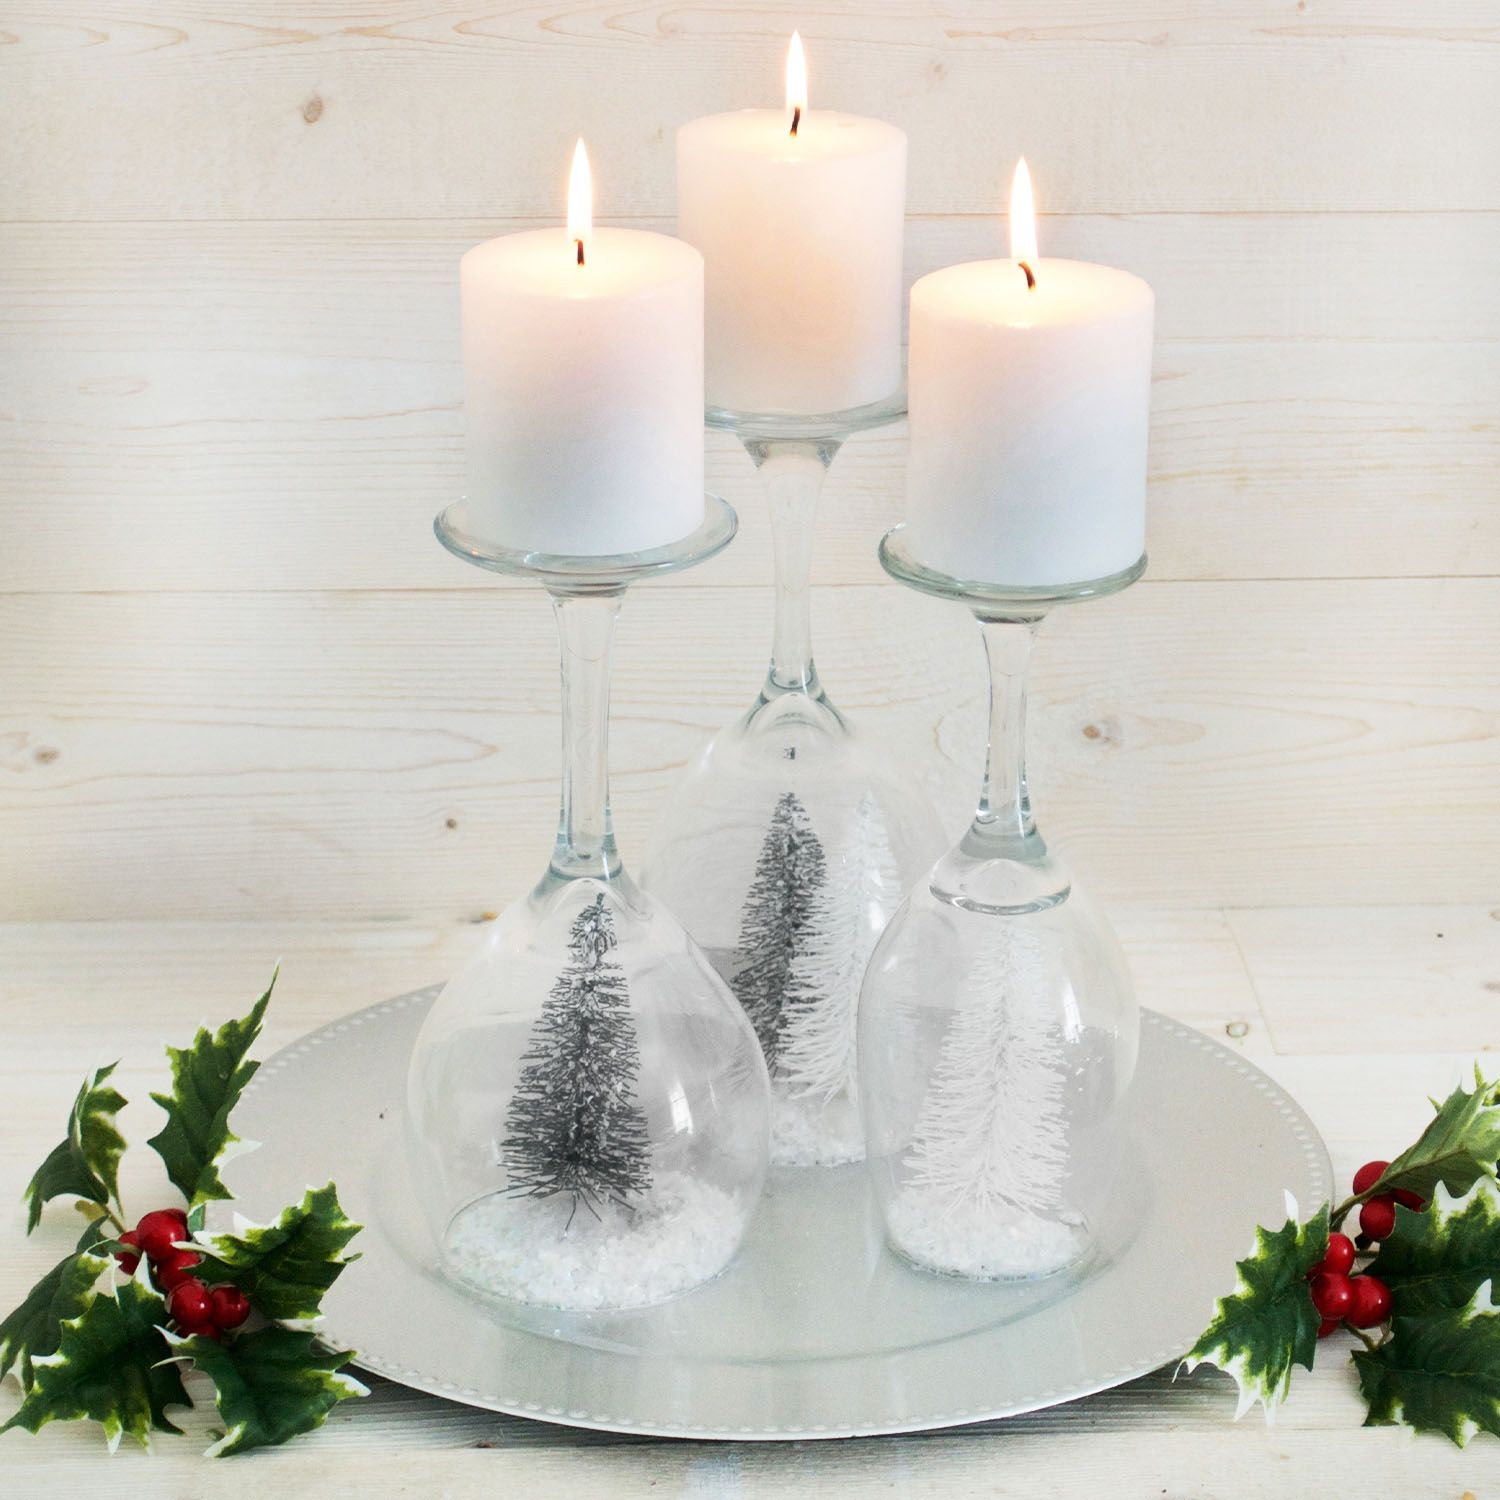 Christmas Candleholder Snow Globes Dollar Tree's Loyalty